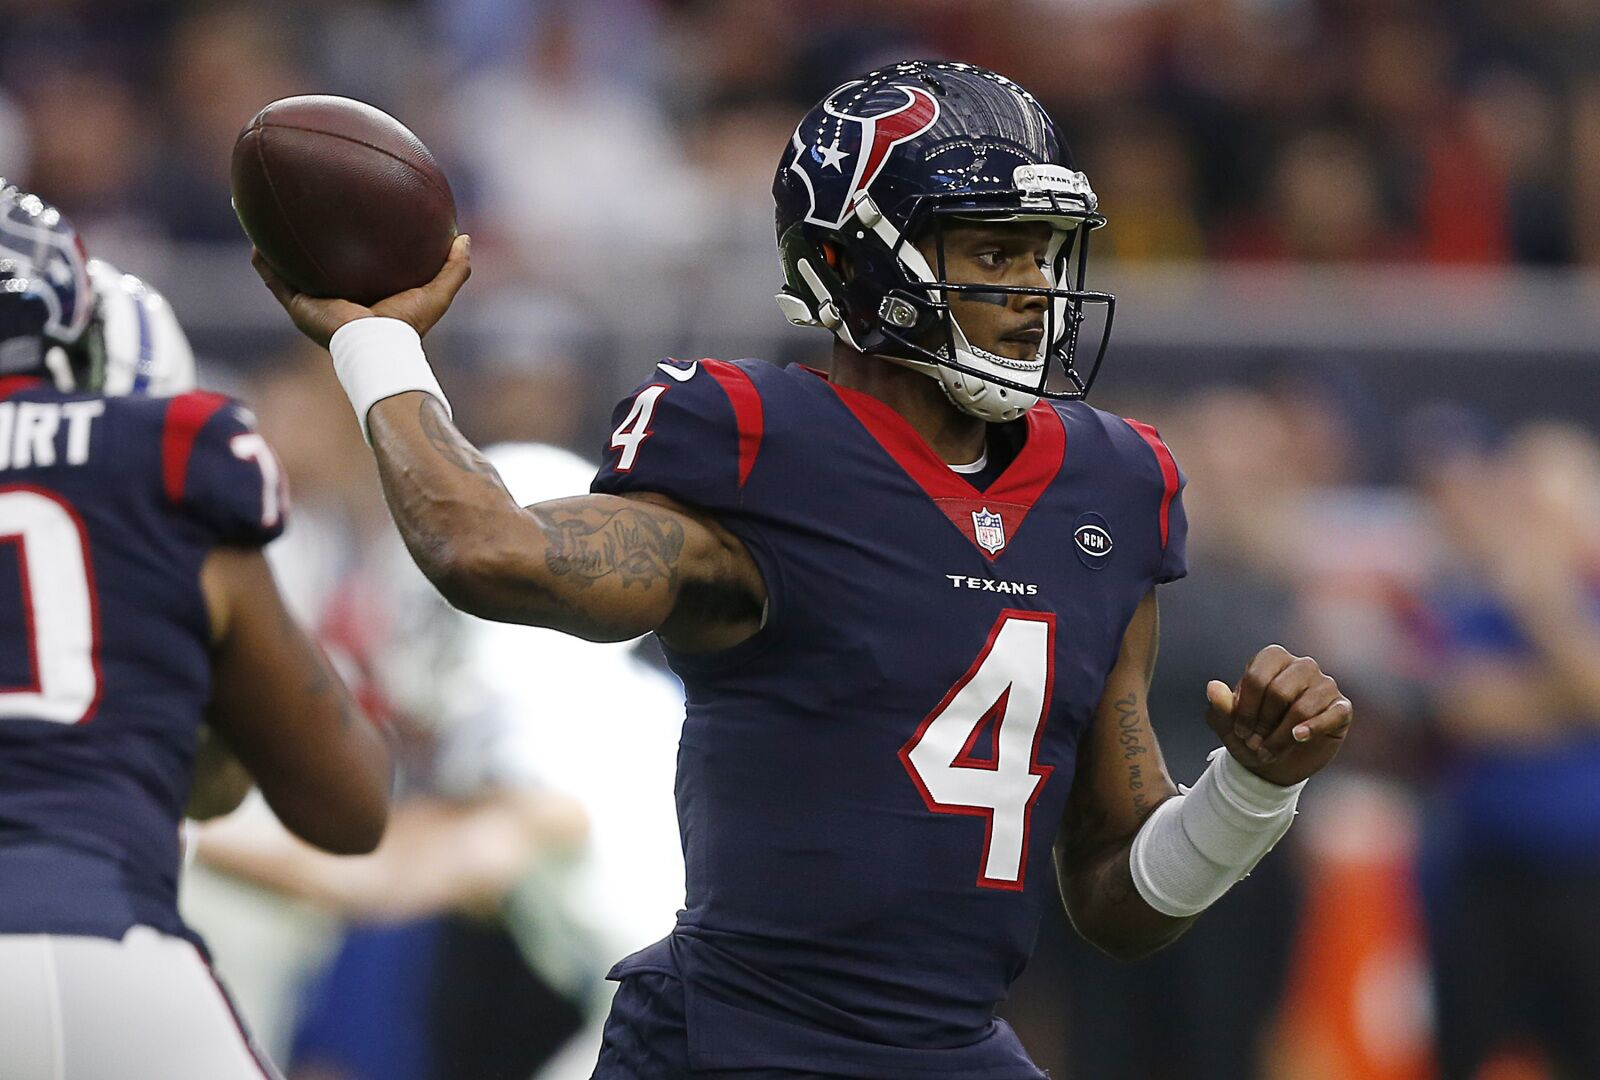 38a65511 2019 NFL Draft: 5 players Texans could take in Round 1 - Football ...